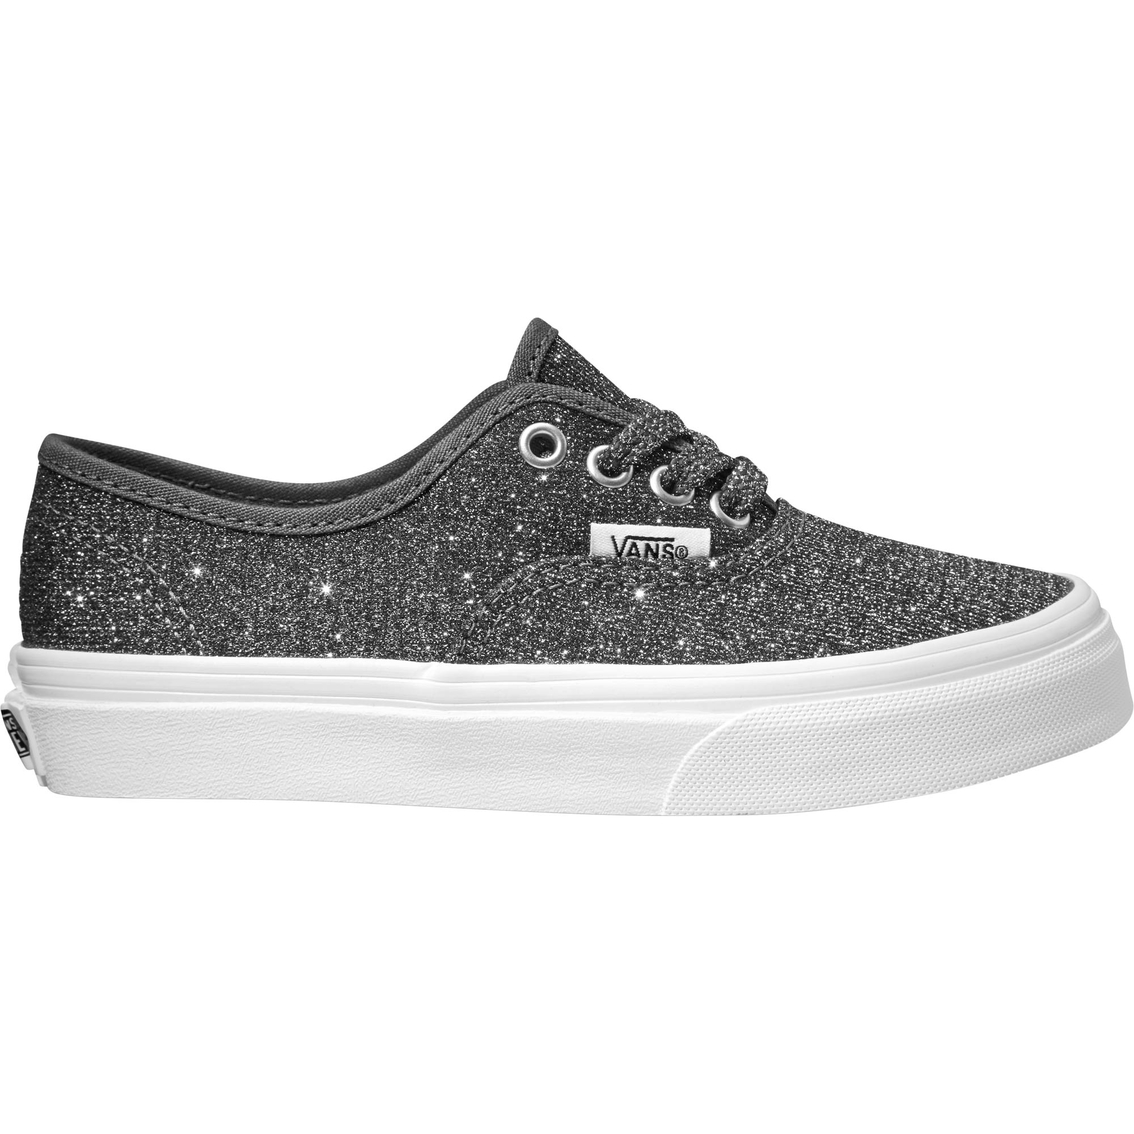 8f9ba3fcb49b Vans Girls Authentic Lurex Glitter Shoes